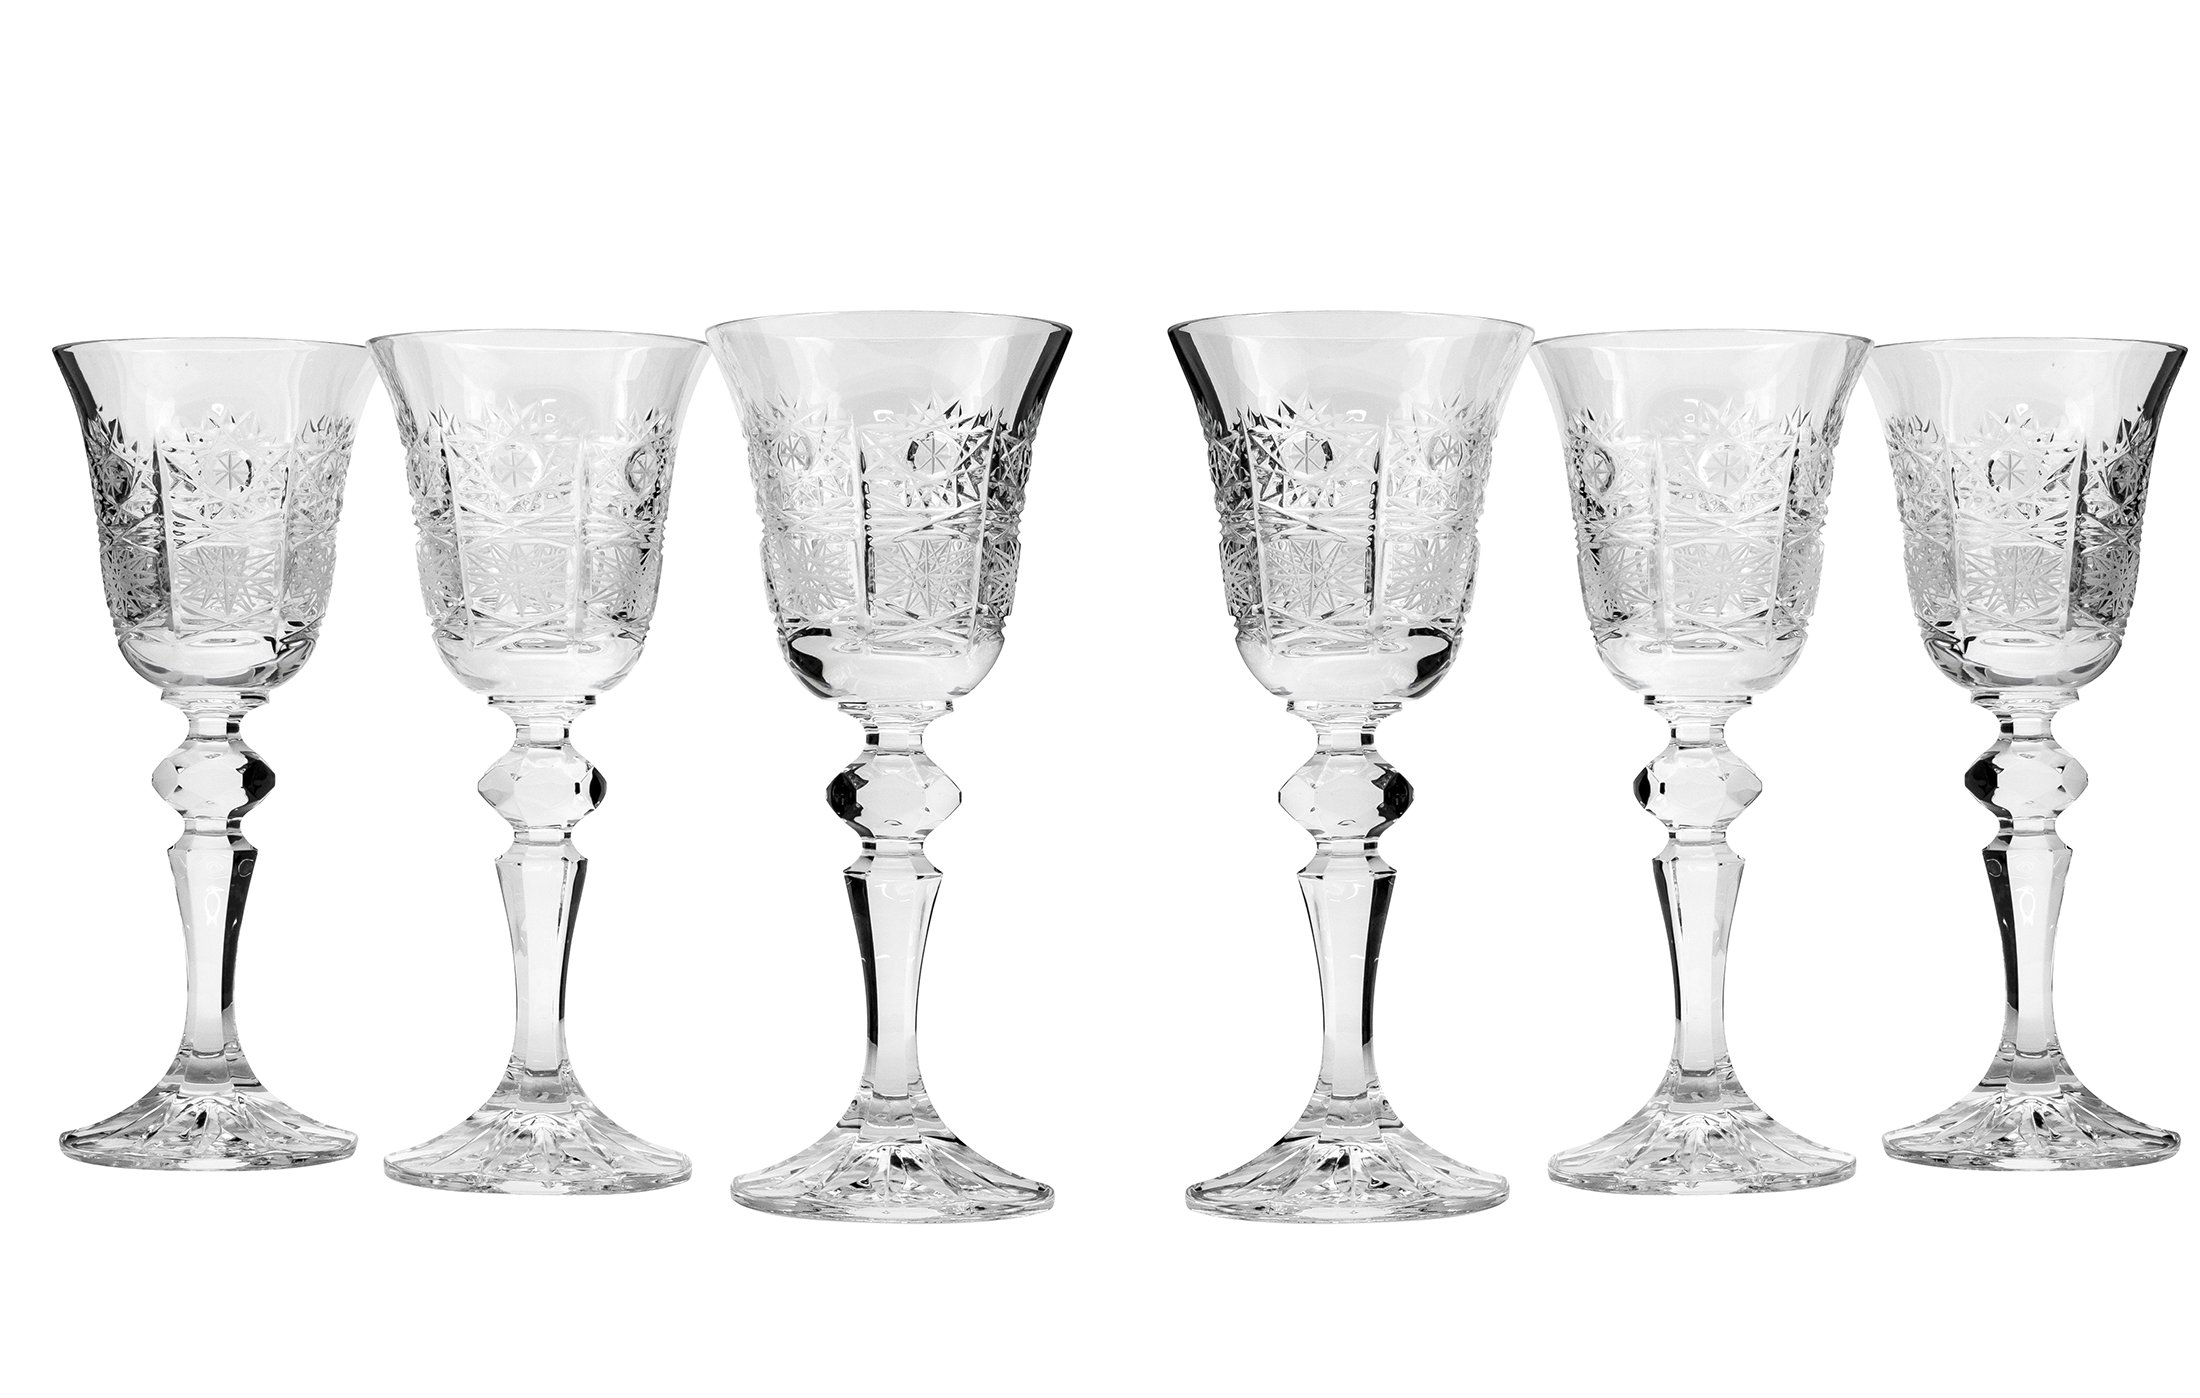 Bohemia Crystal 50148, 5 Oz. Crystal Cut Wine Glasses on a Long Stem, Clear Red/White Wine Glasses, Wedding Gift Drinkware, Set of 6